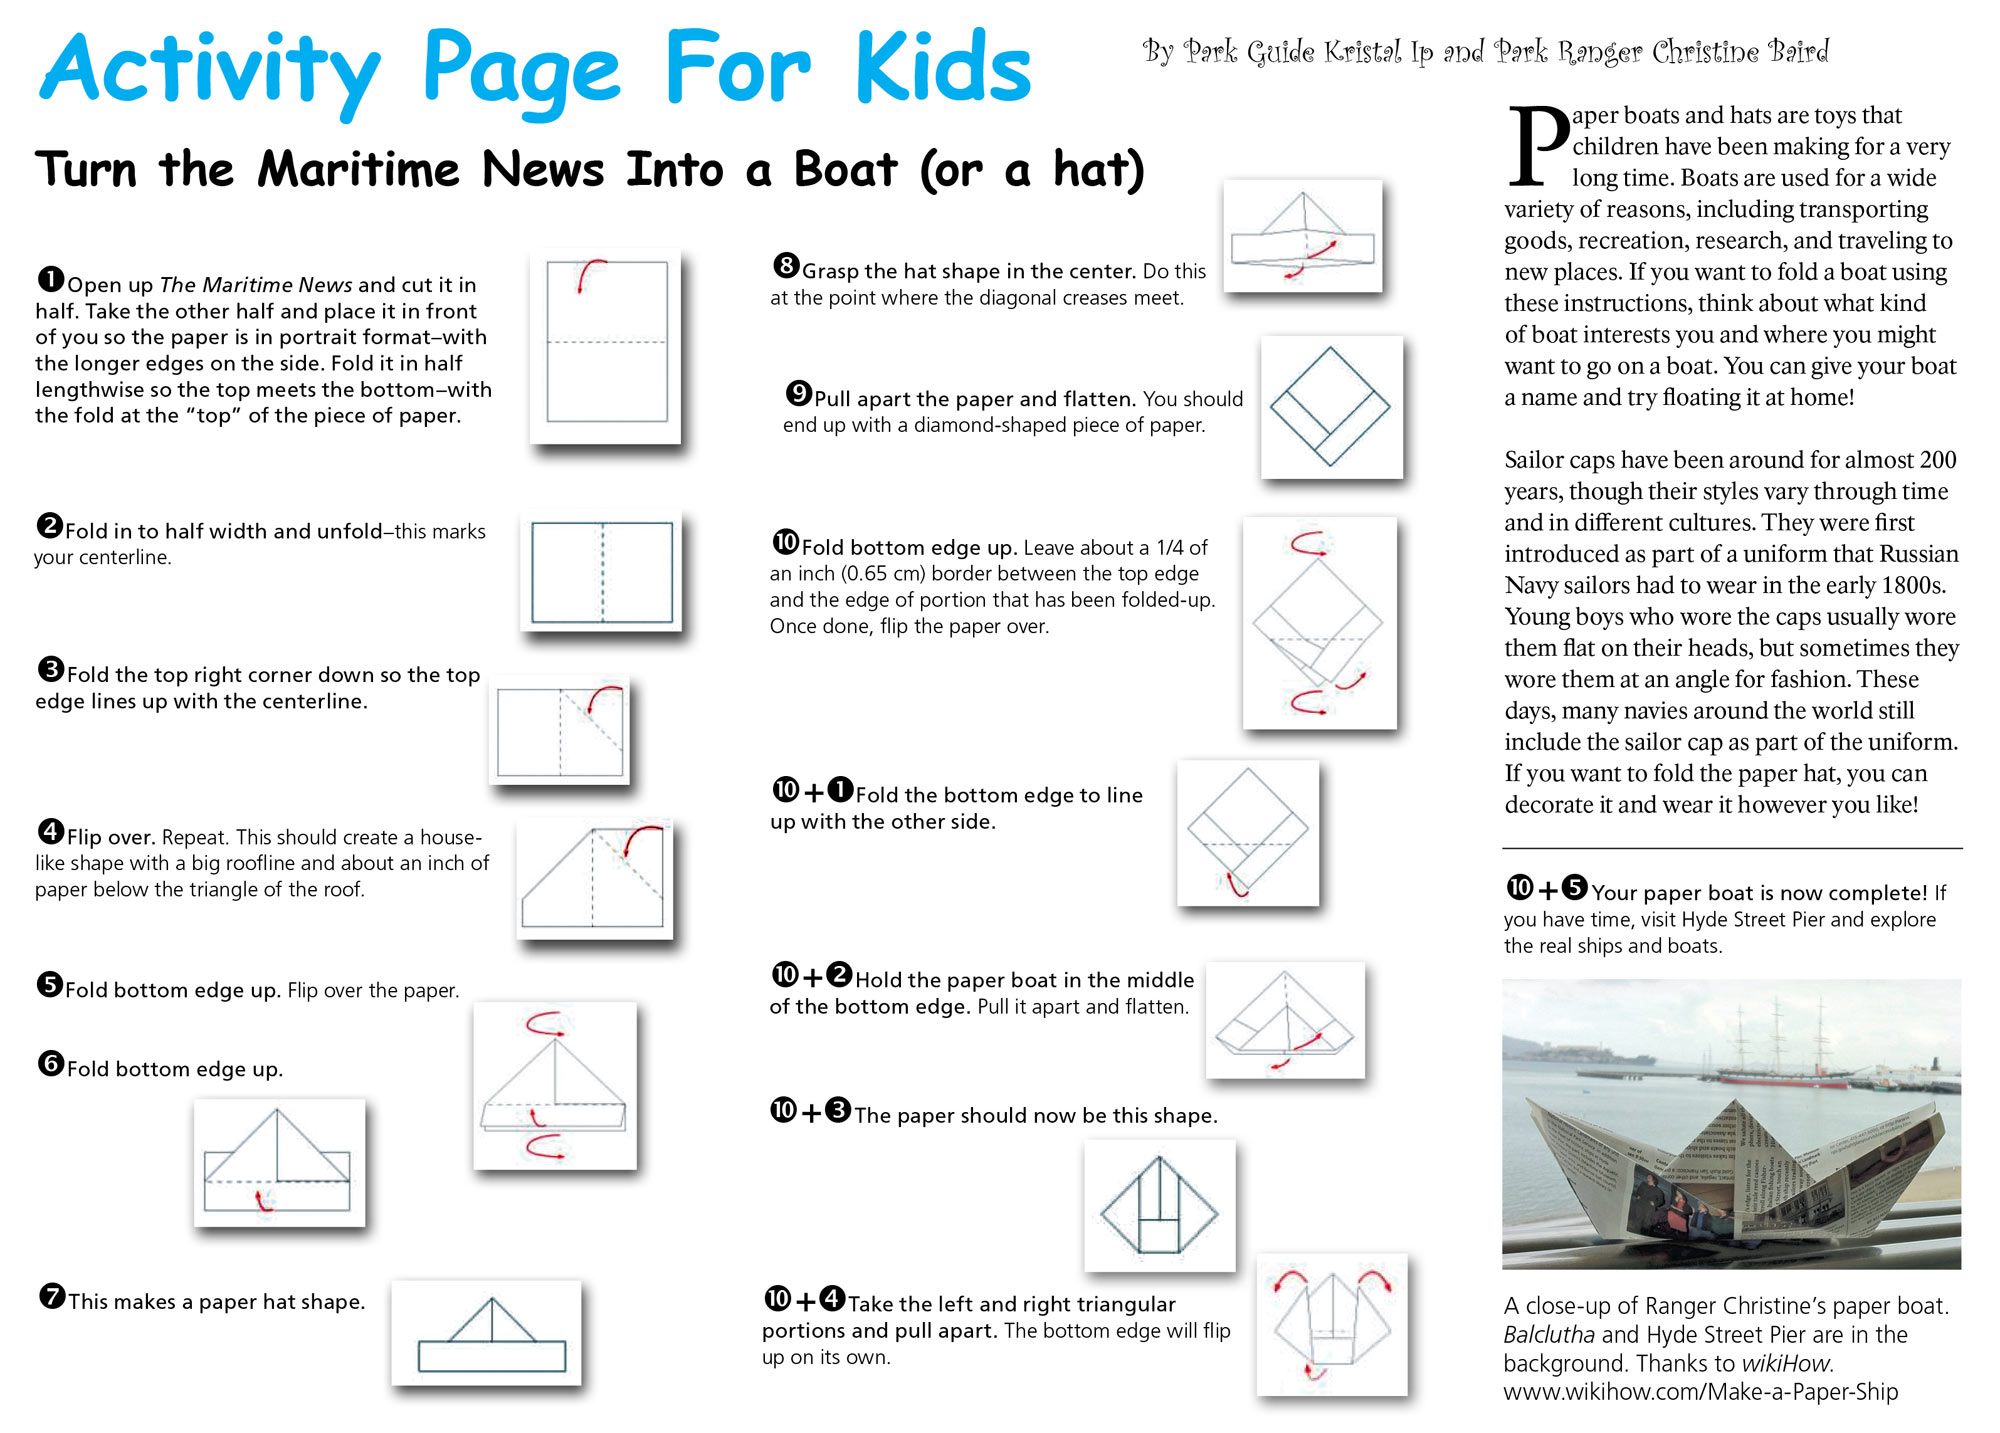 Directions for folding a paper boat.